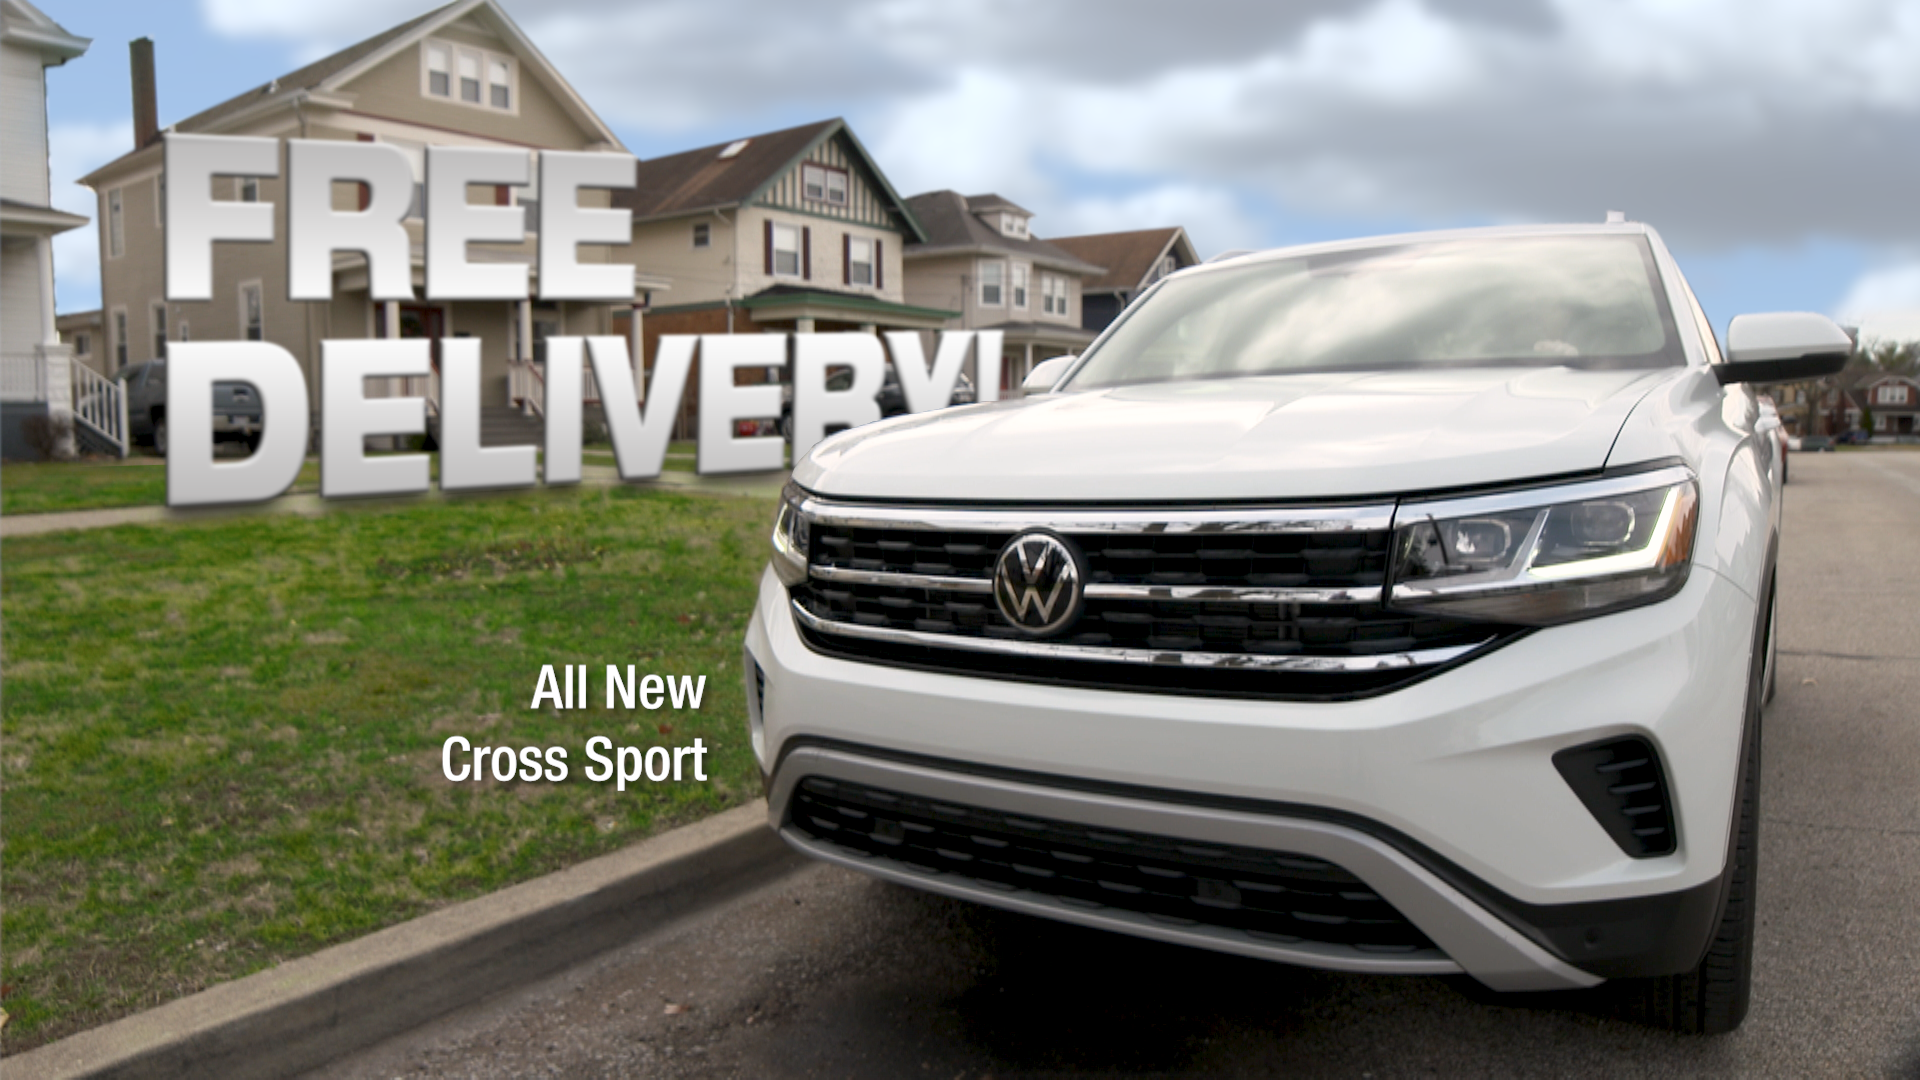 FreeDelivery - CrossSport